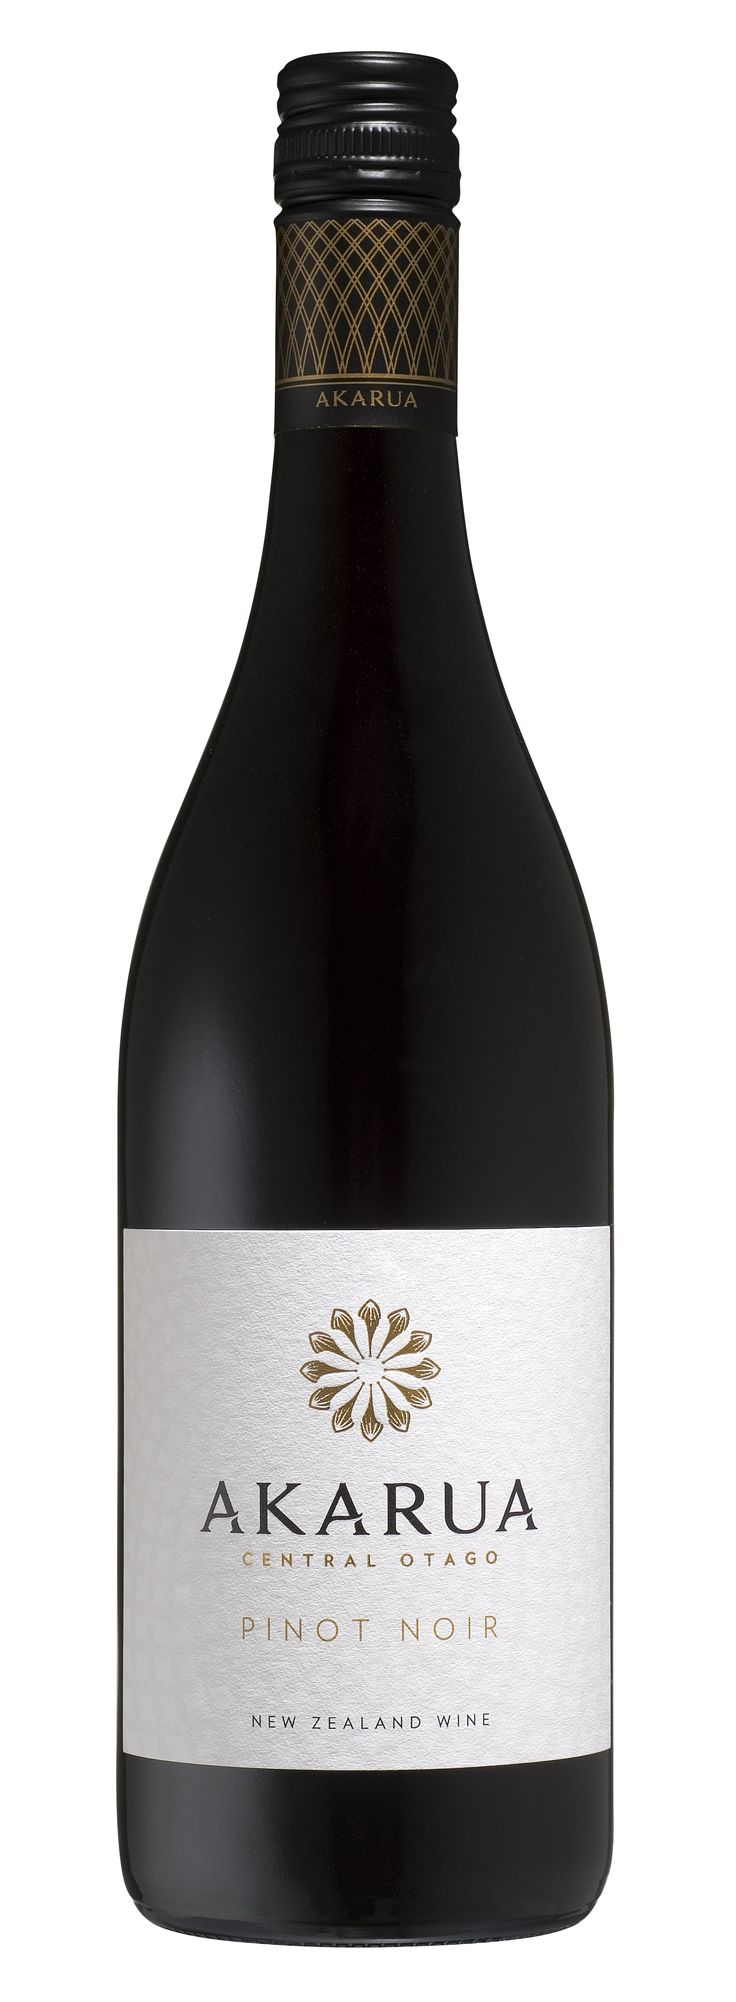 Fun fact time...... In order to get the same amount of anti-oxidants that one 'average' glass of red wine (regardless of type) offers, you would need to neck down 20 glasses of fresh pressed apple juice or 7 glasses of freshly squeezed orange juice. So a glass of Akarua Pinot Noir really does keep the doctor away!